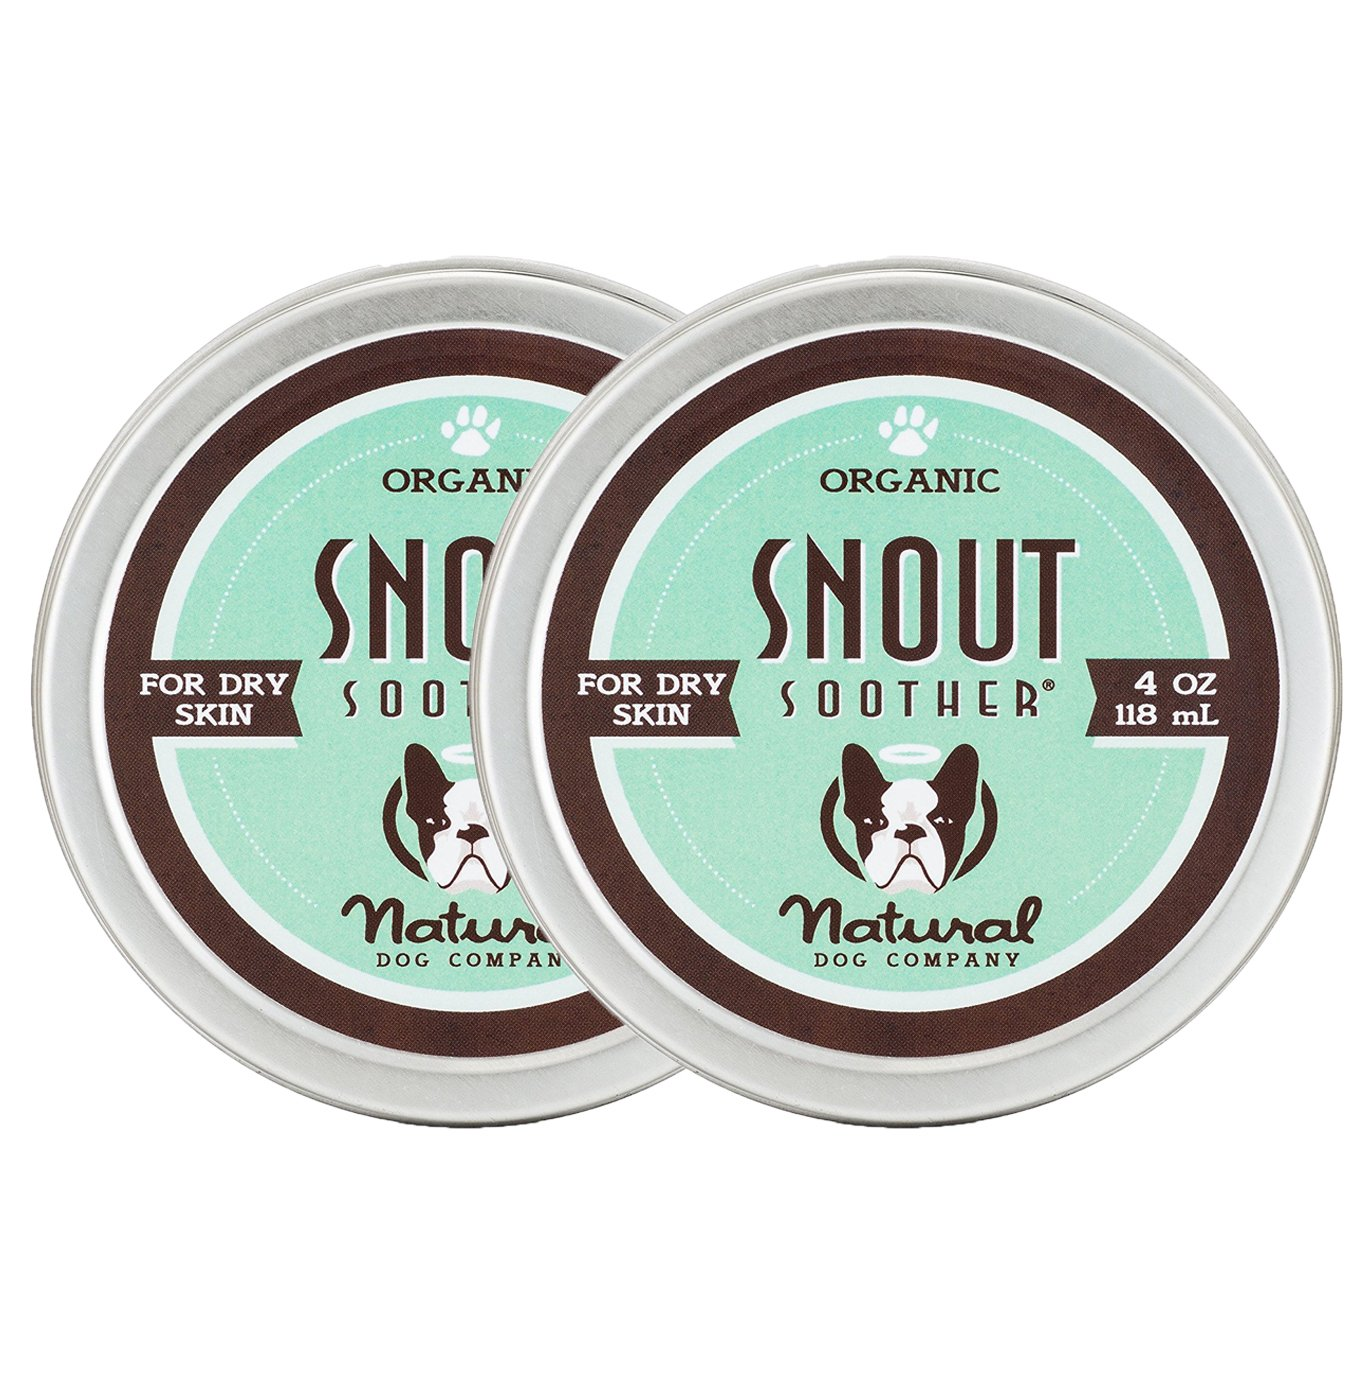 NaturalDog.com SNOUT SOOTHER | Organic, All-Natural | Dry Chapped Cracked Crusty Dog Nose Remedy (4 Oz (Best Value), 2 Pack)